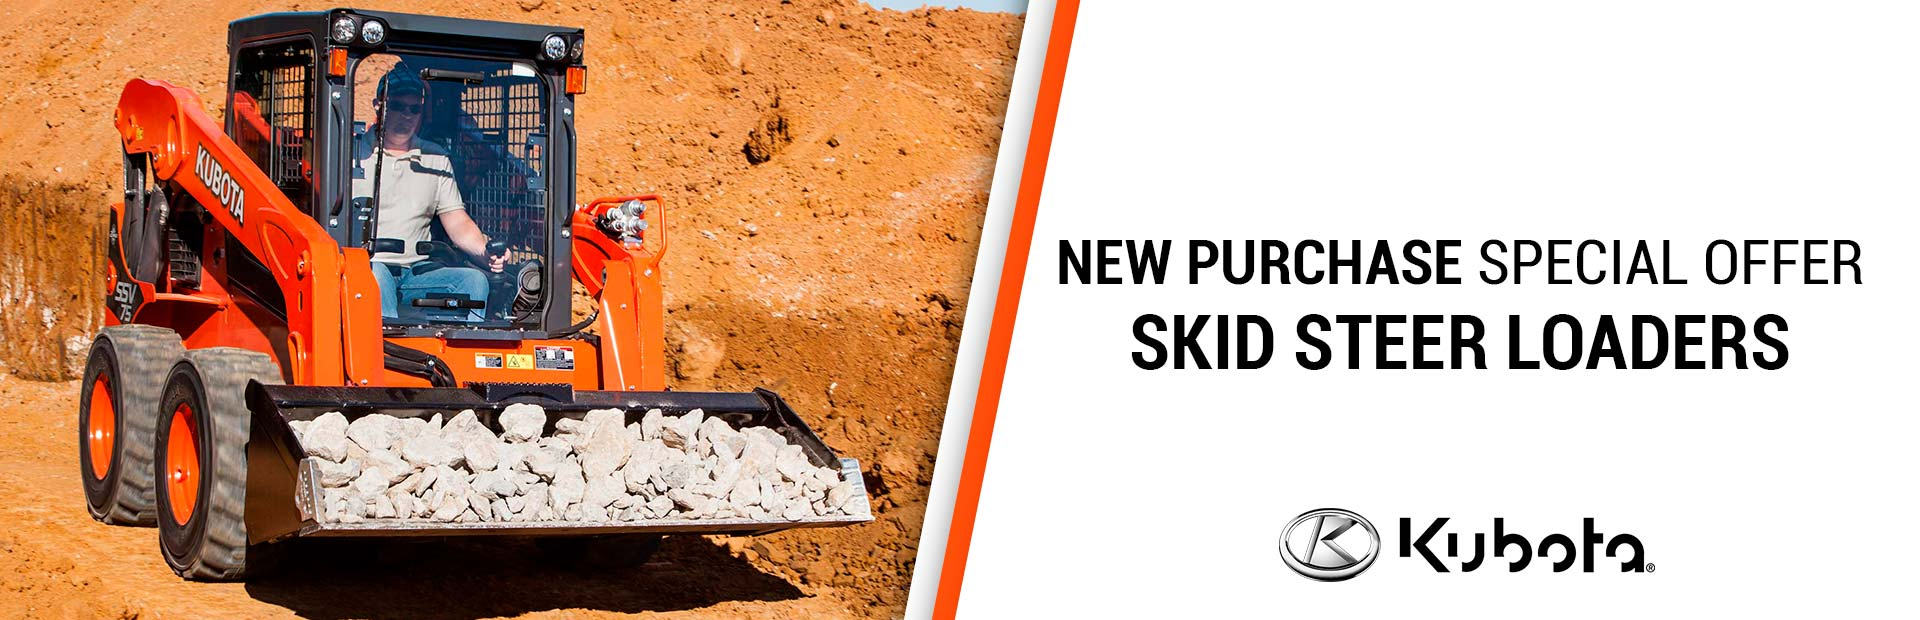 Kubota: NEW PURCHASE SPECIAL-SKID STEER LOADERS